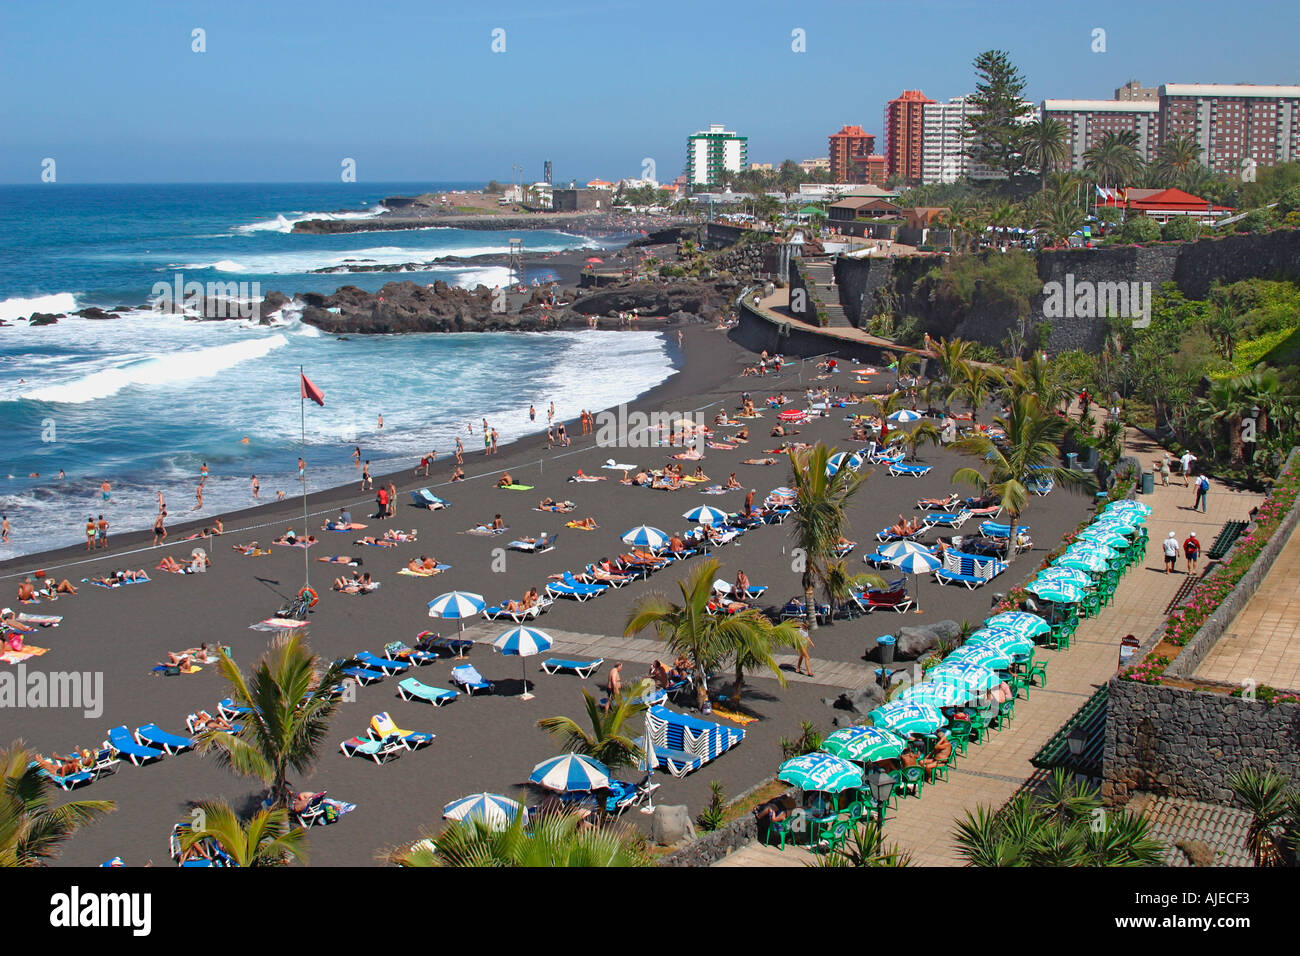 Playa jardin puerto de la cruz tenerife canary islands spain stock photo royalty free image - Playa puerto de la cruz tenerife ...